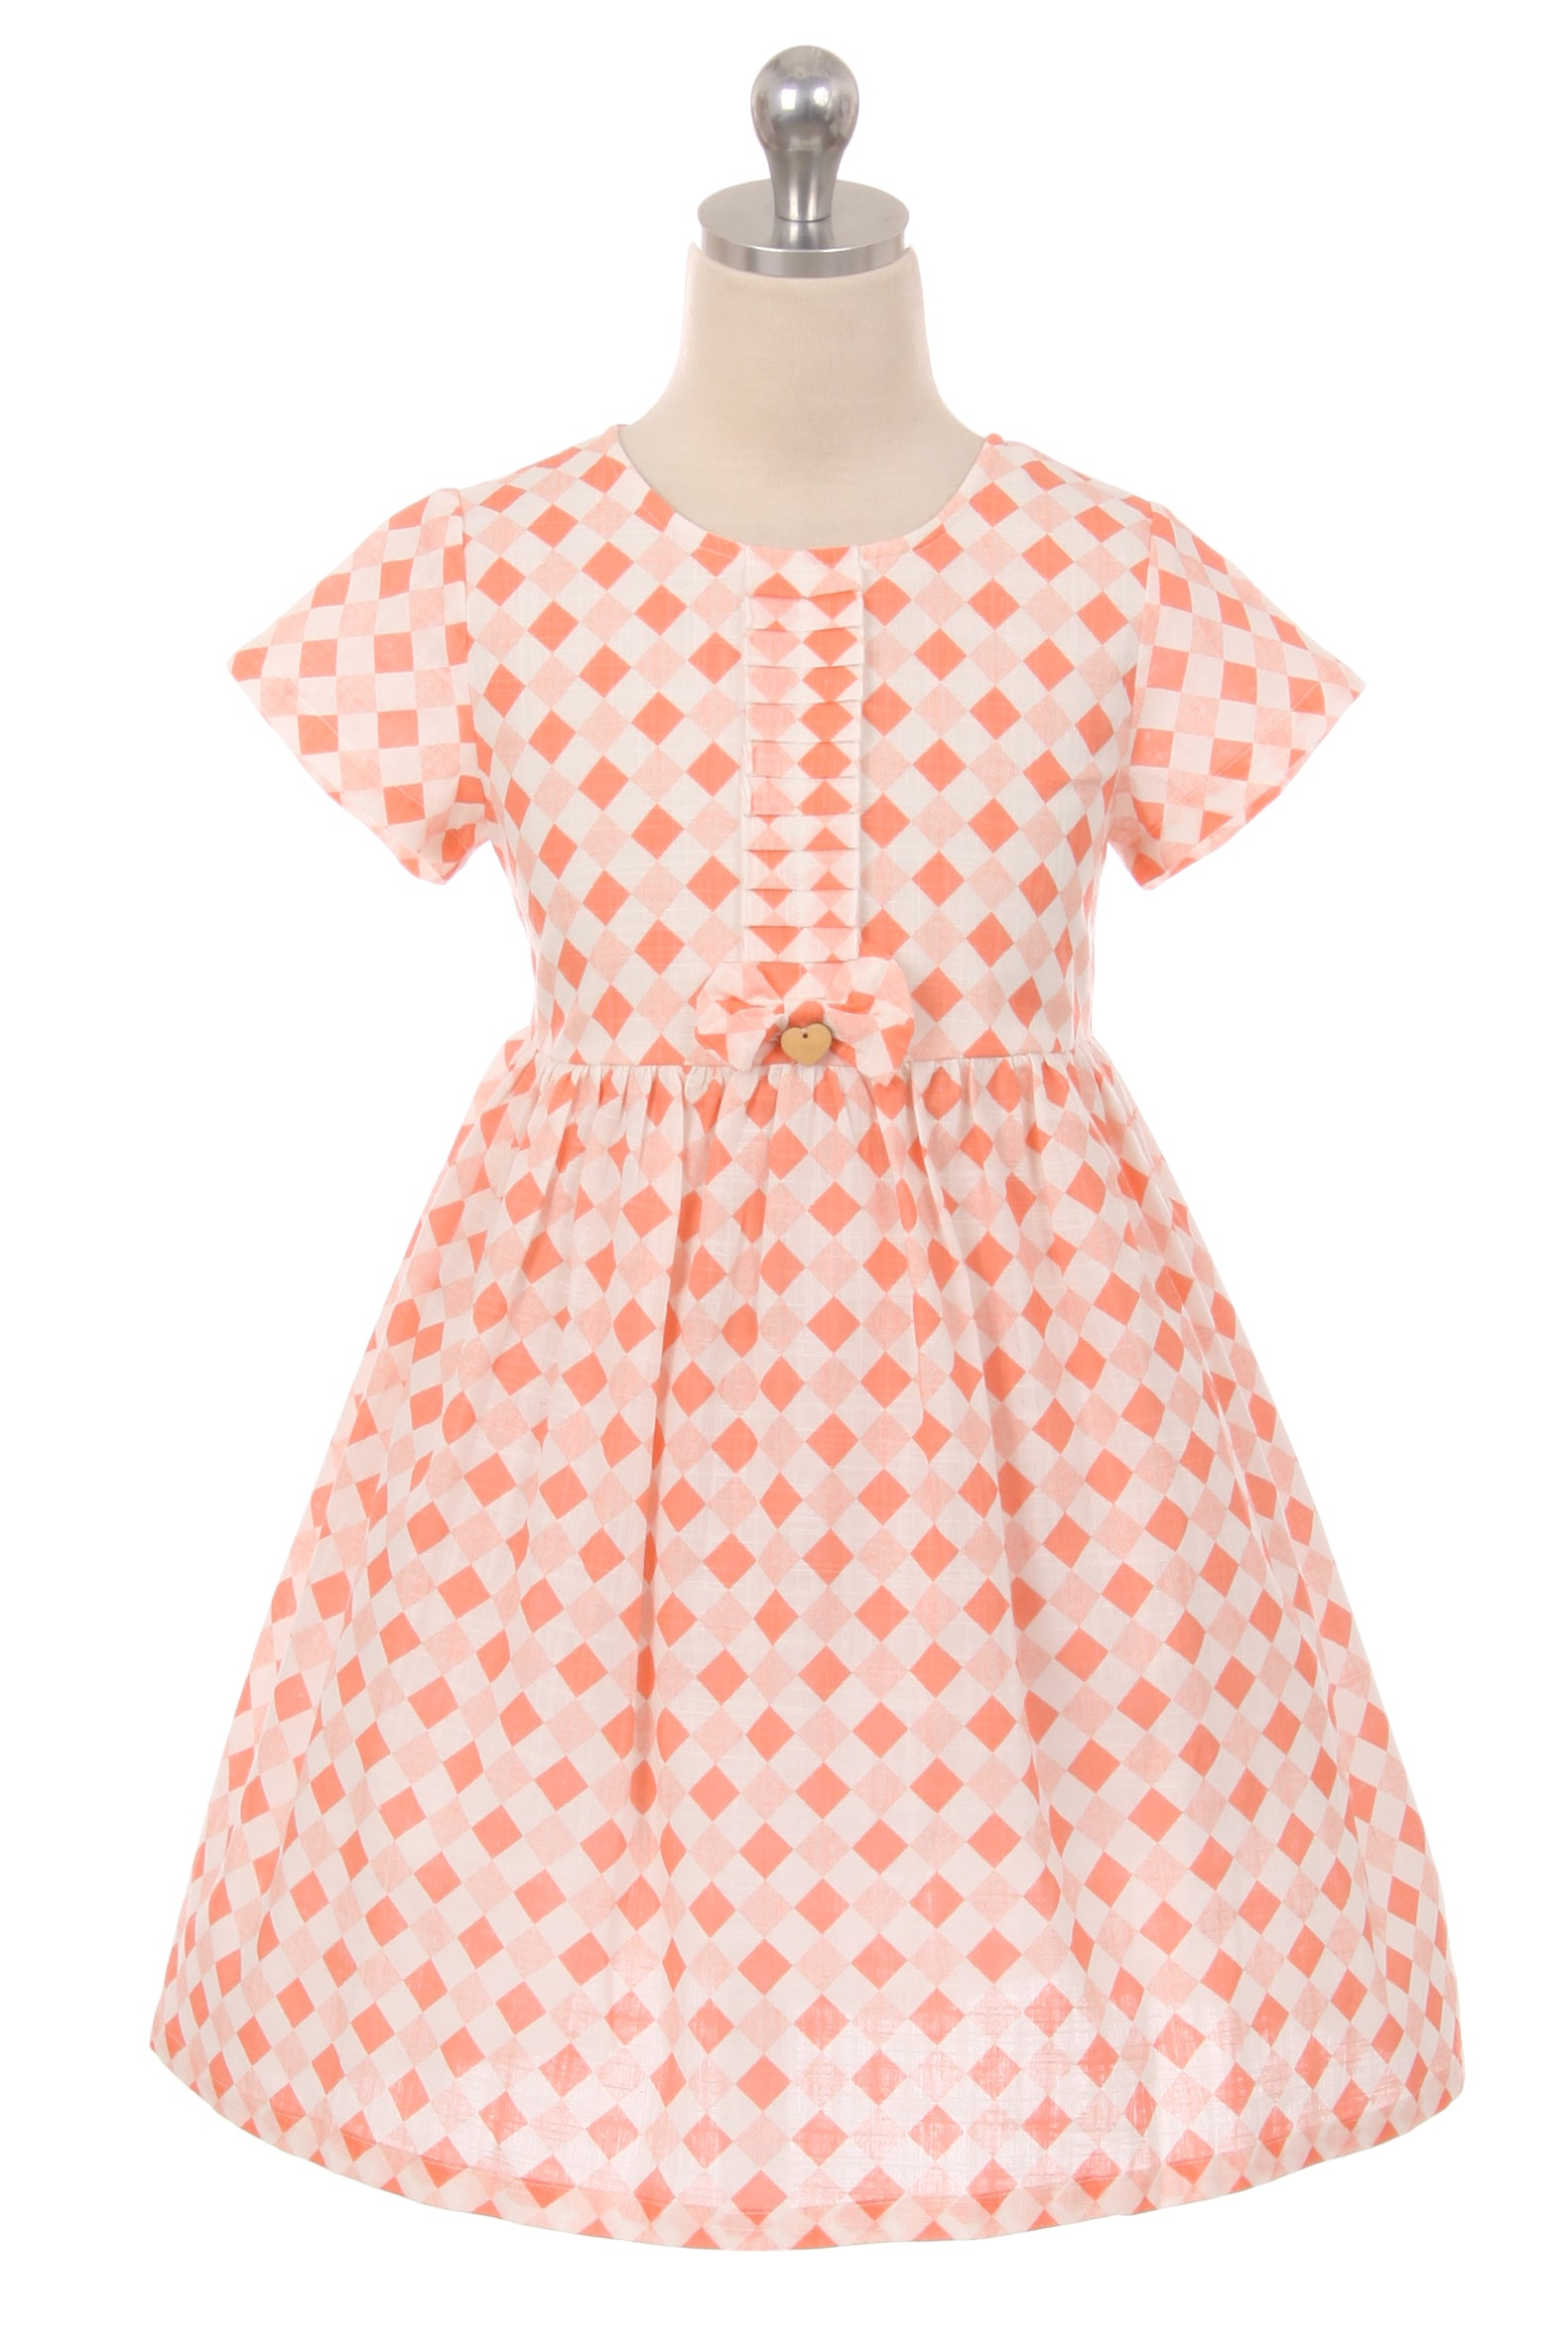 Square Checkered Cotton Girl Dress